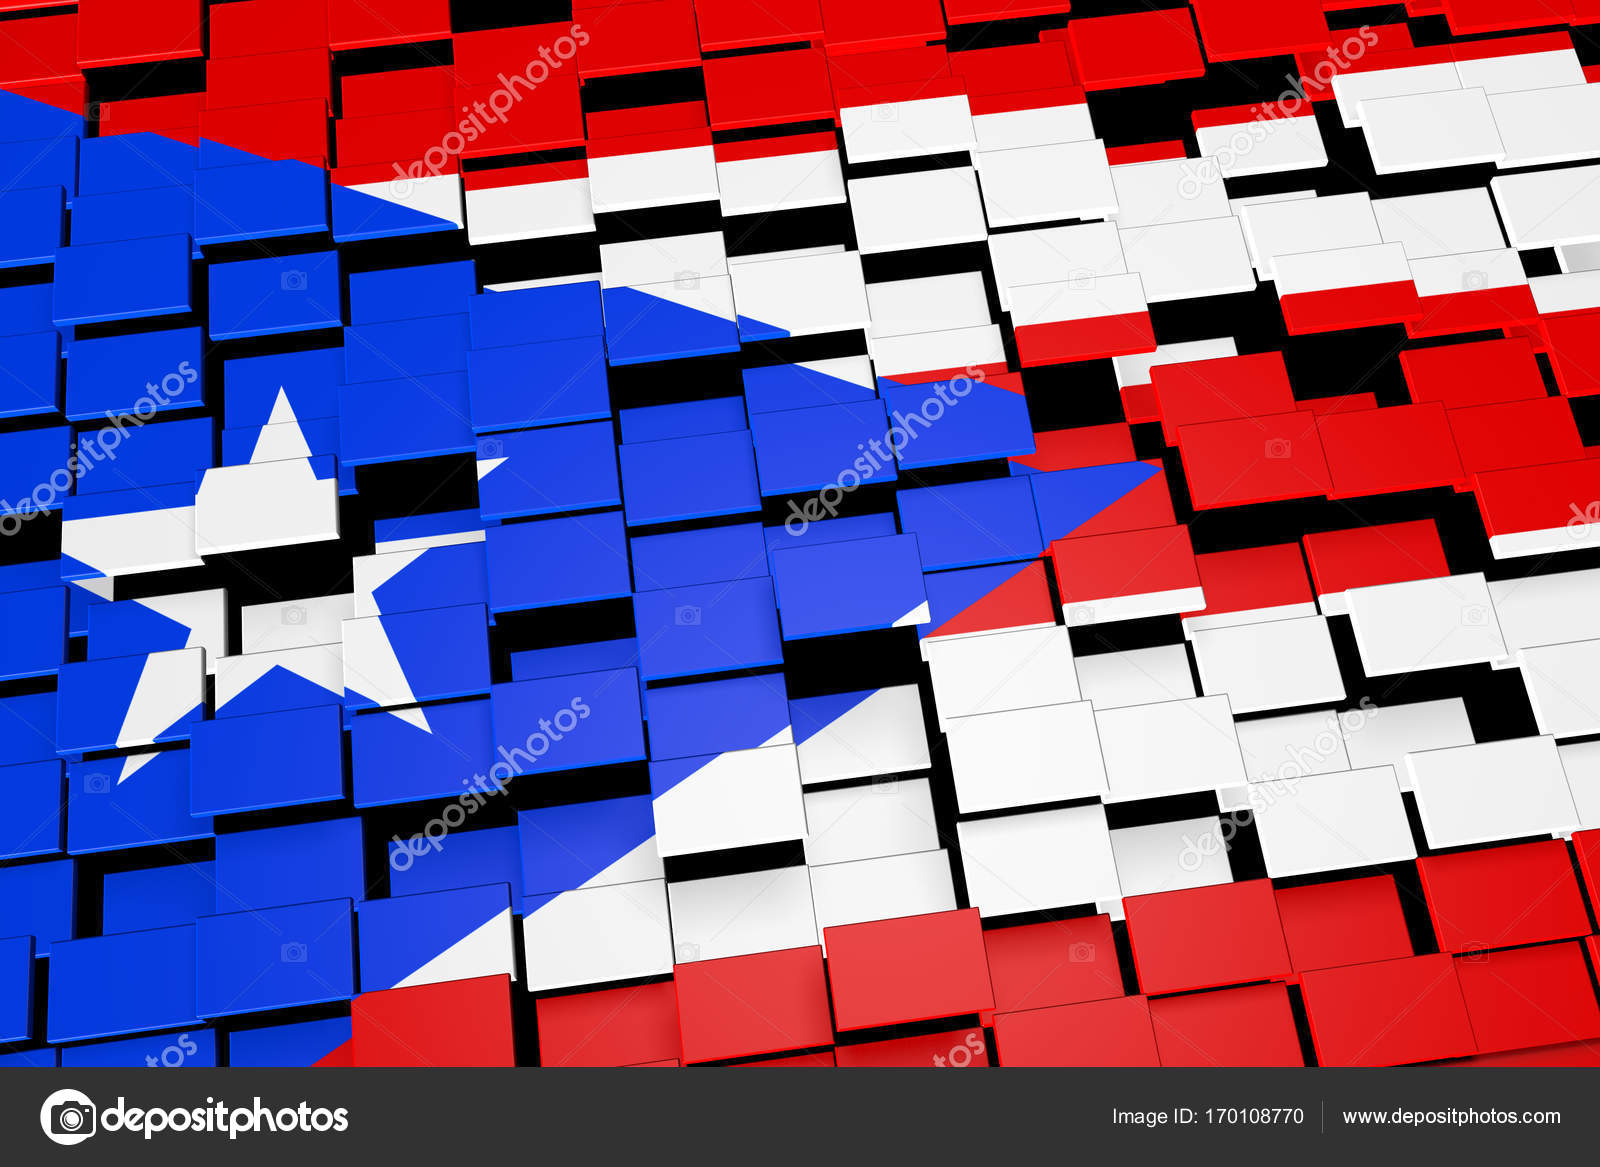 Puerto Rico Flag Background Formed From Digital Mosaic Tiles 3D Rendering Stock Photo